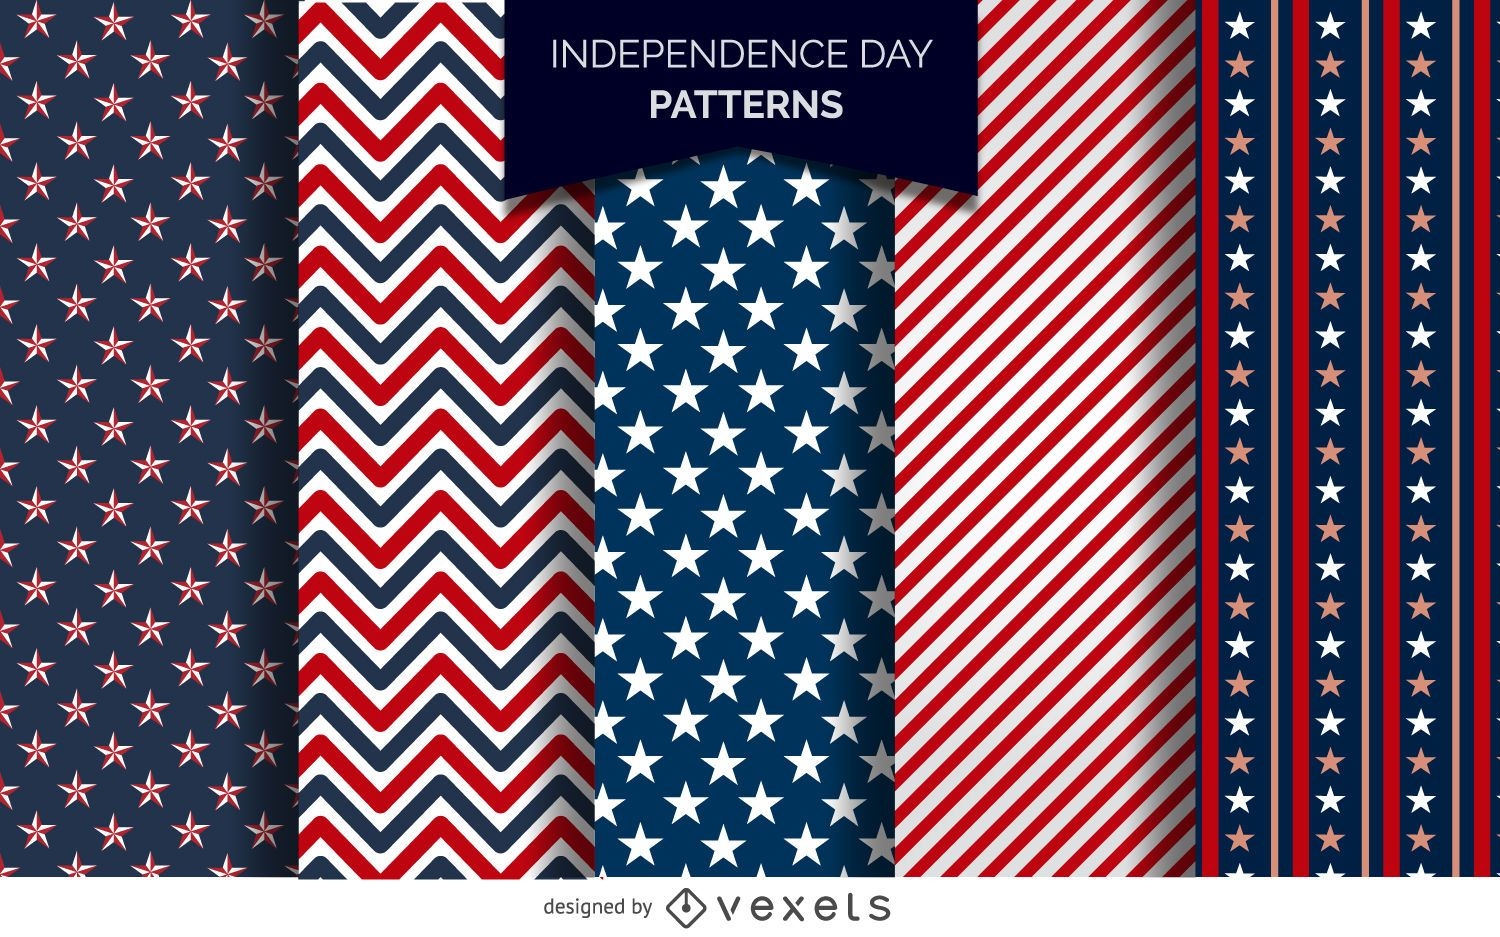 US Independence Day patterns